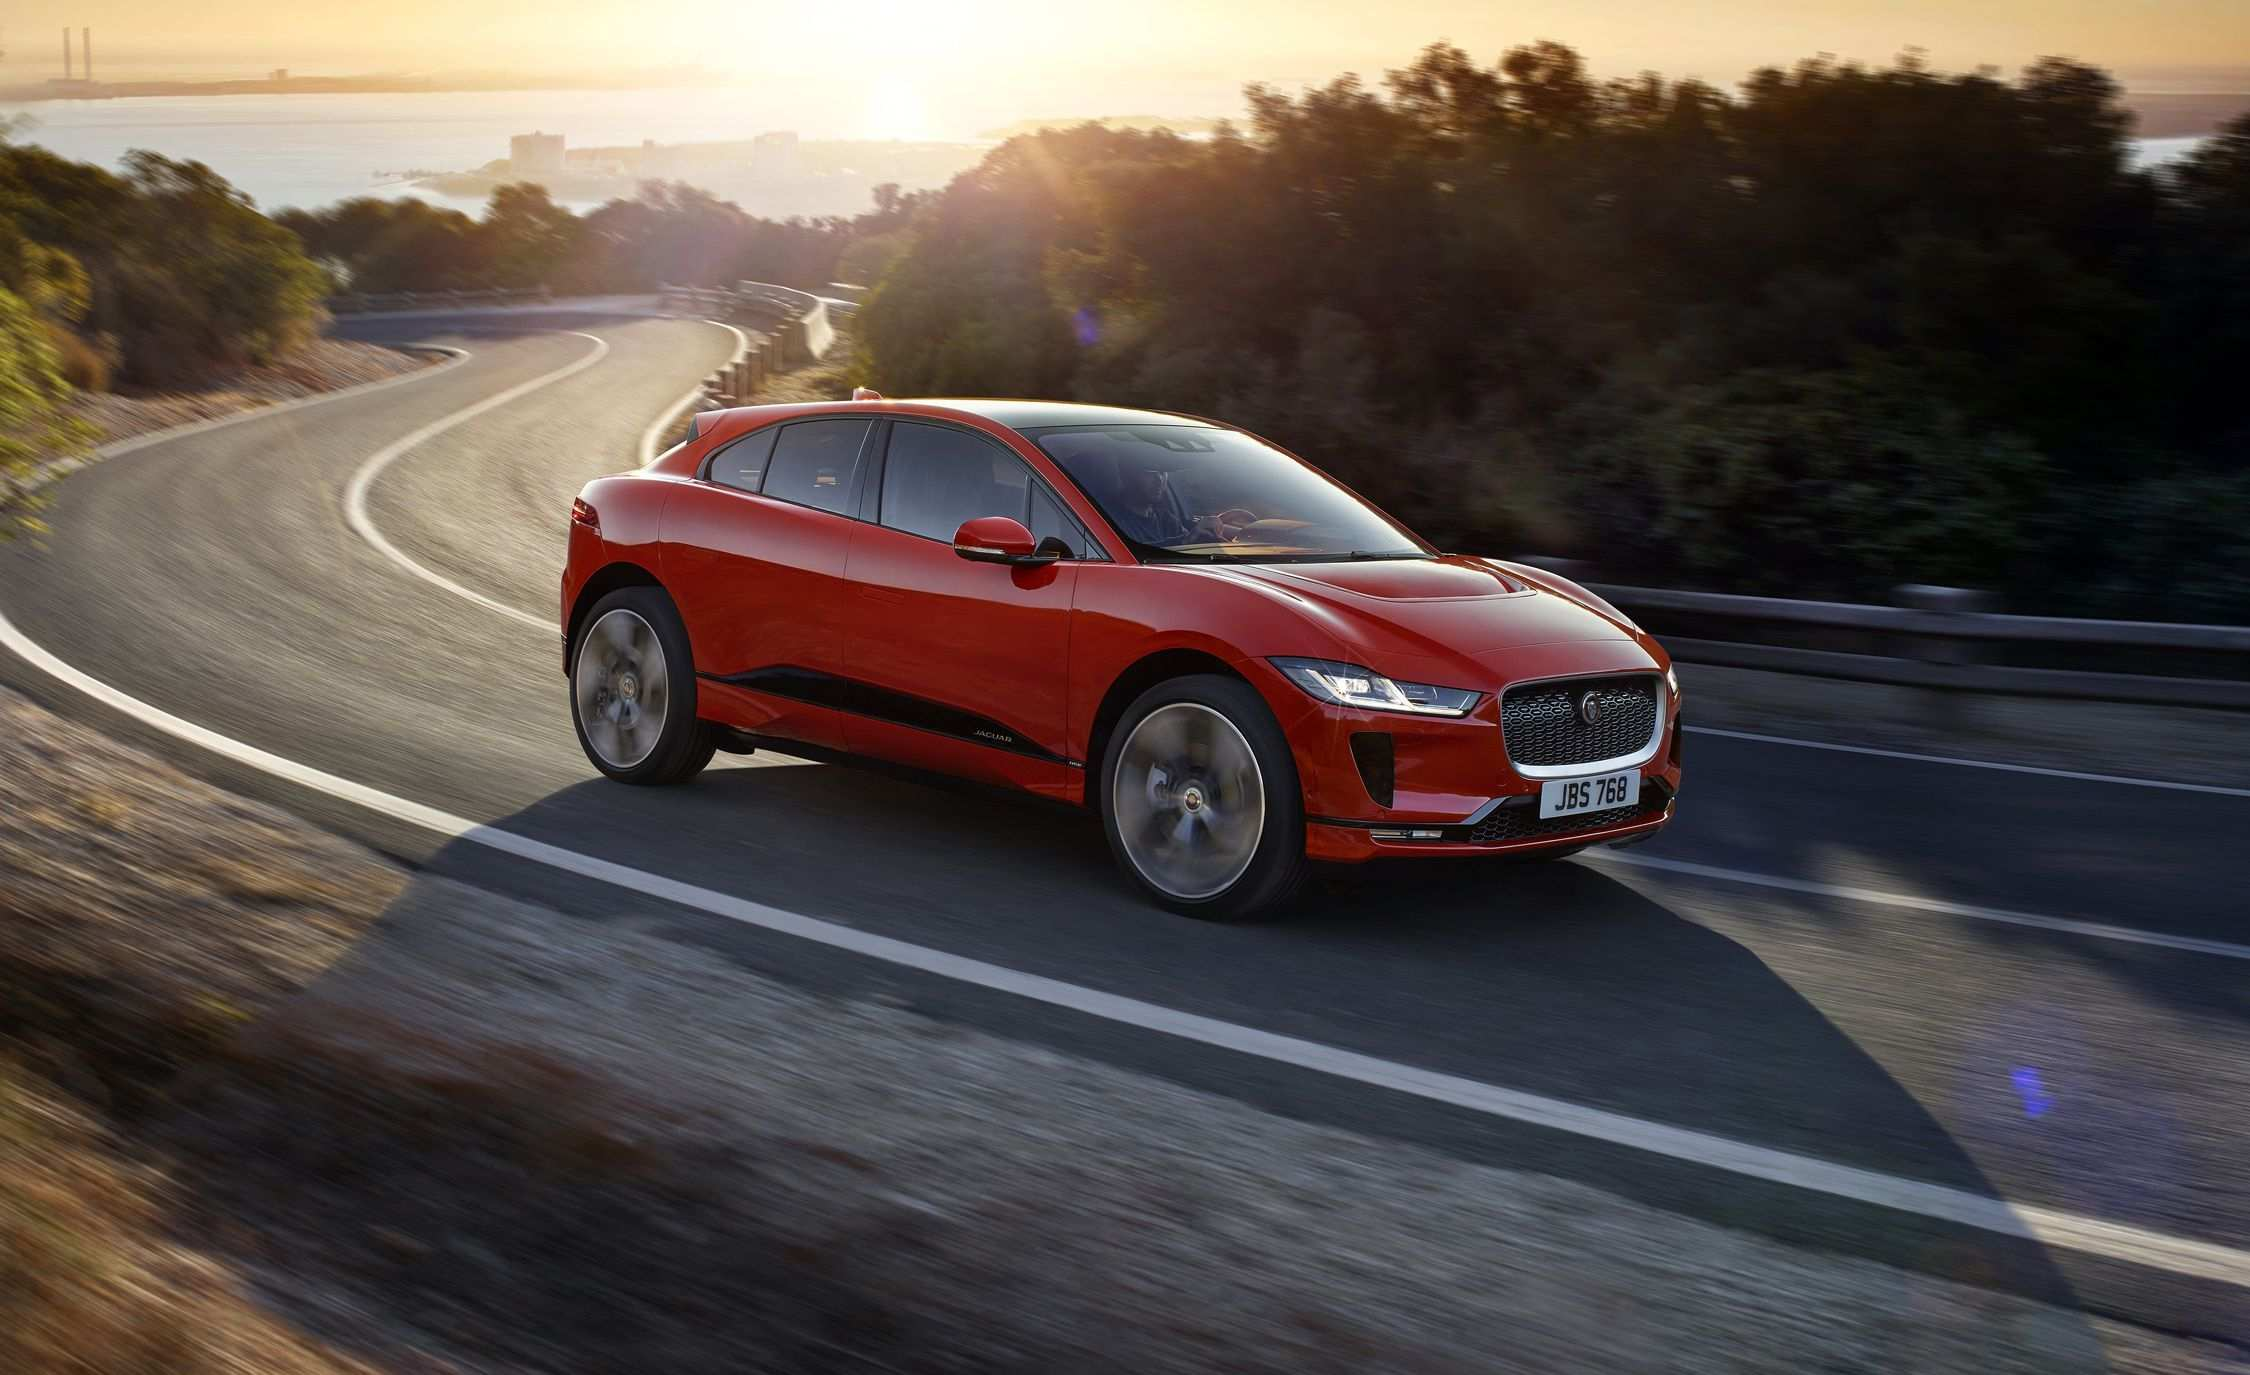 77 The Best 2019 Jaguar I Pace Release Date Overview